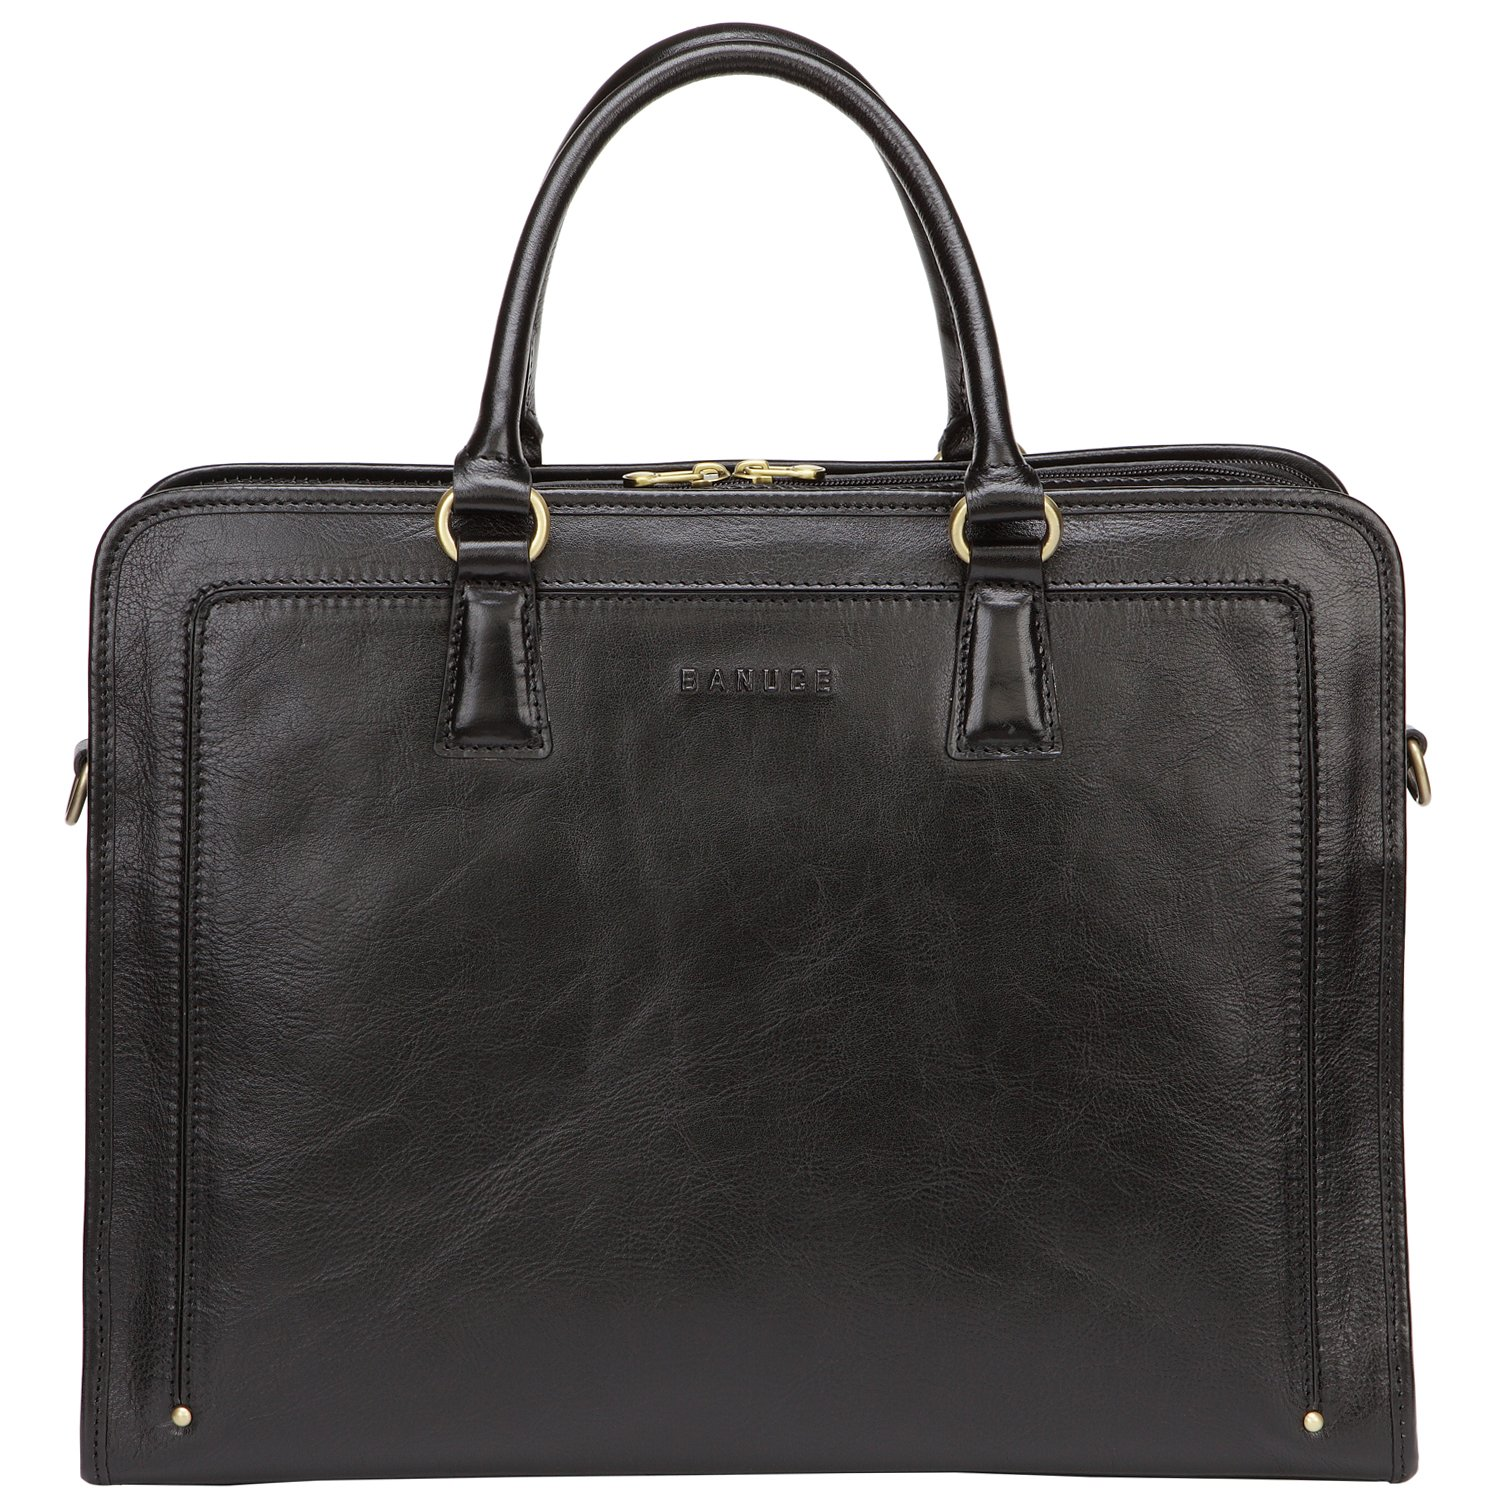 Banuce Full Grains Leather Briefcase Women Messenger Satchel Bag 14 Laptop Black LDOFYBW005-BK